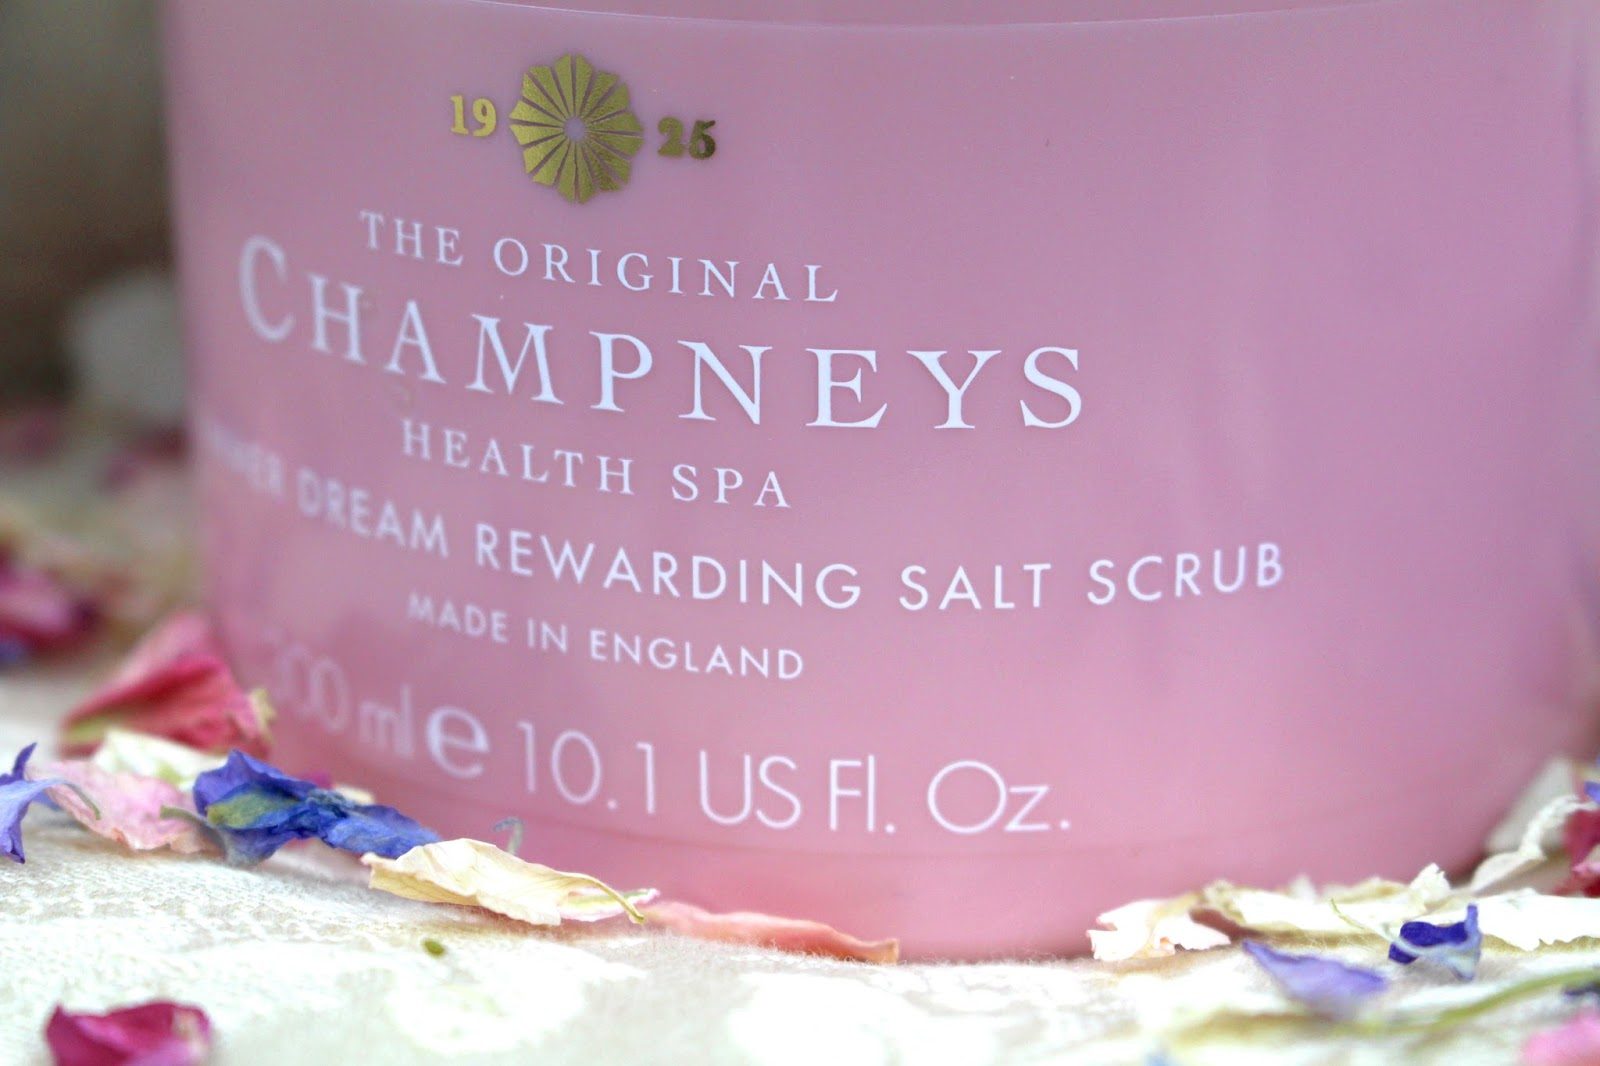 Champneys Summer Dream Rewarding Salt Scrub